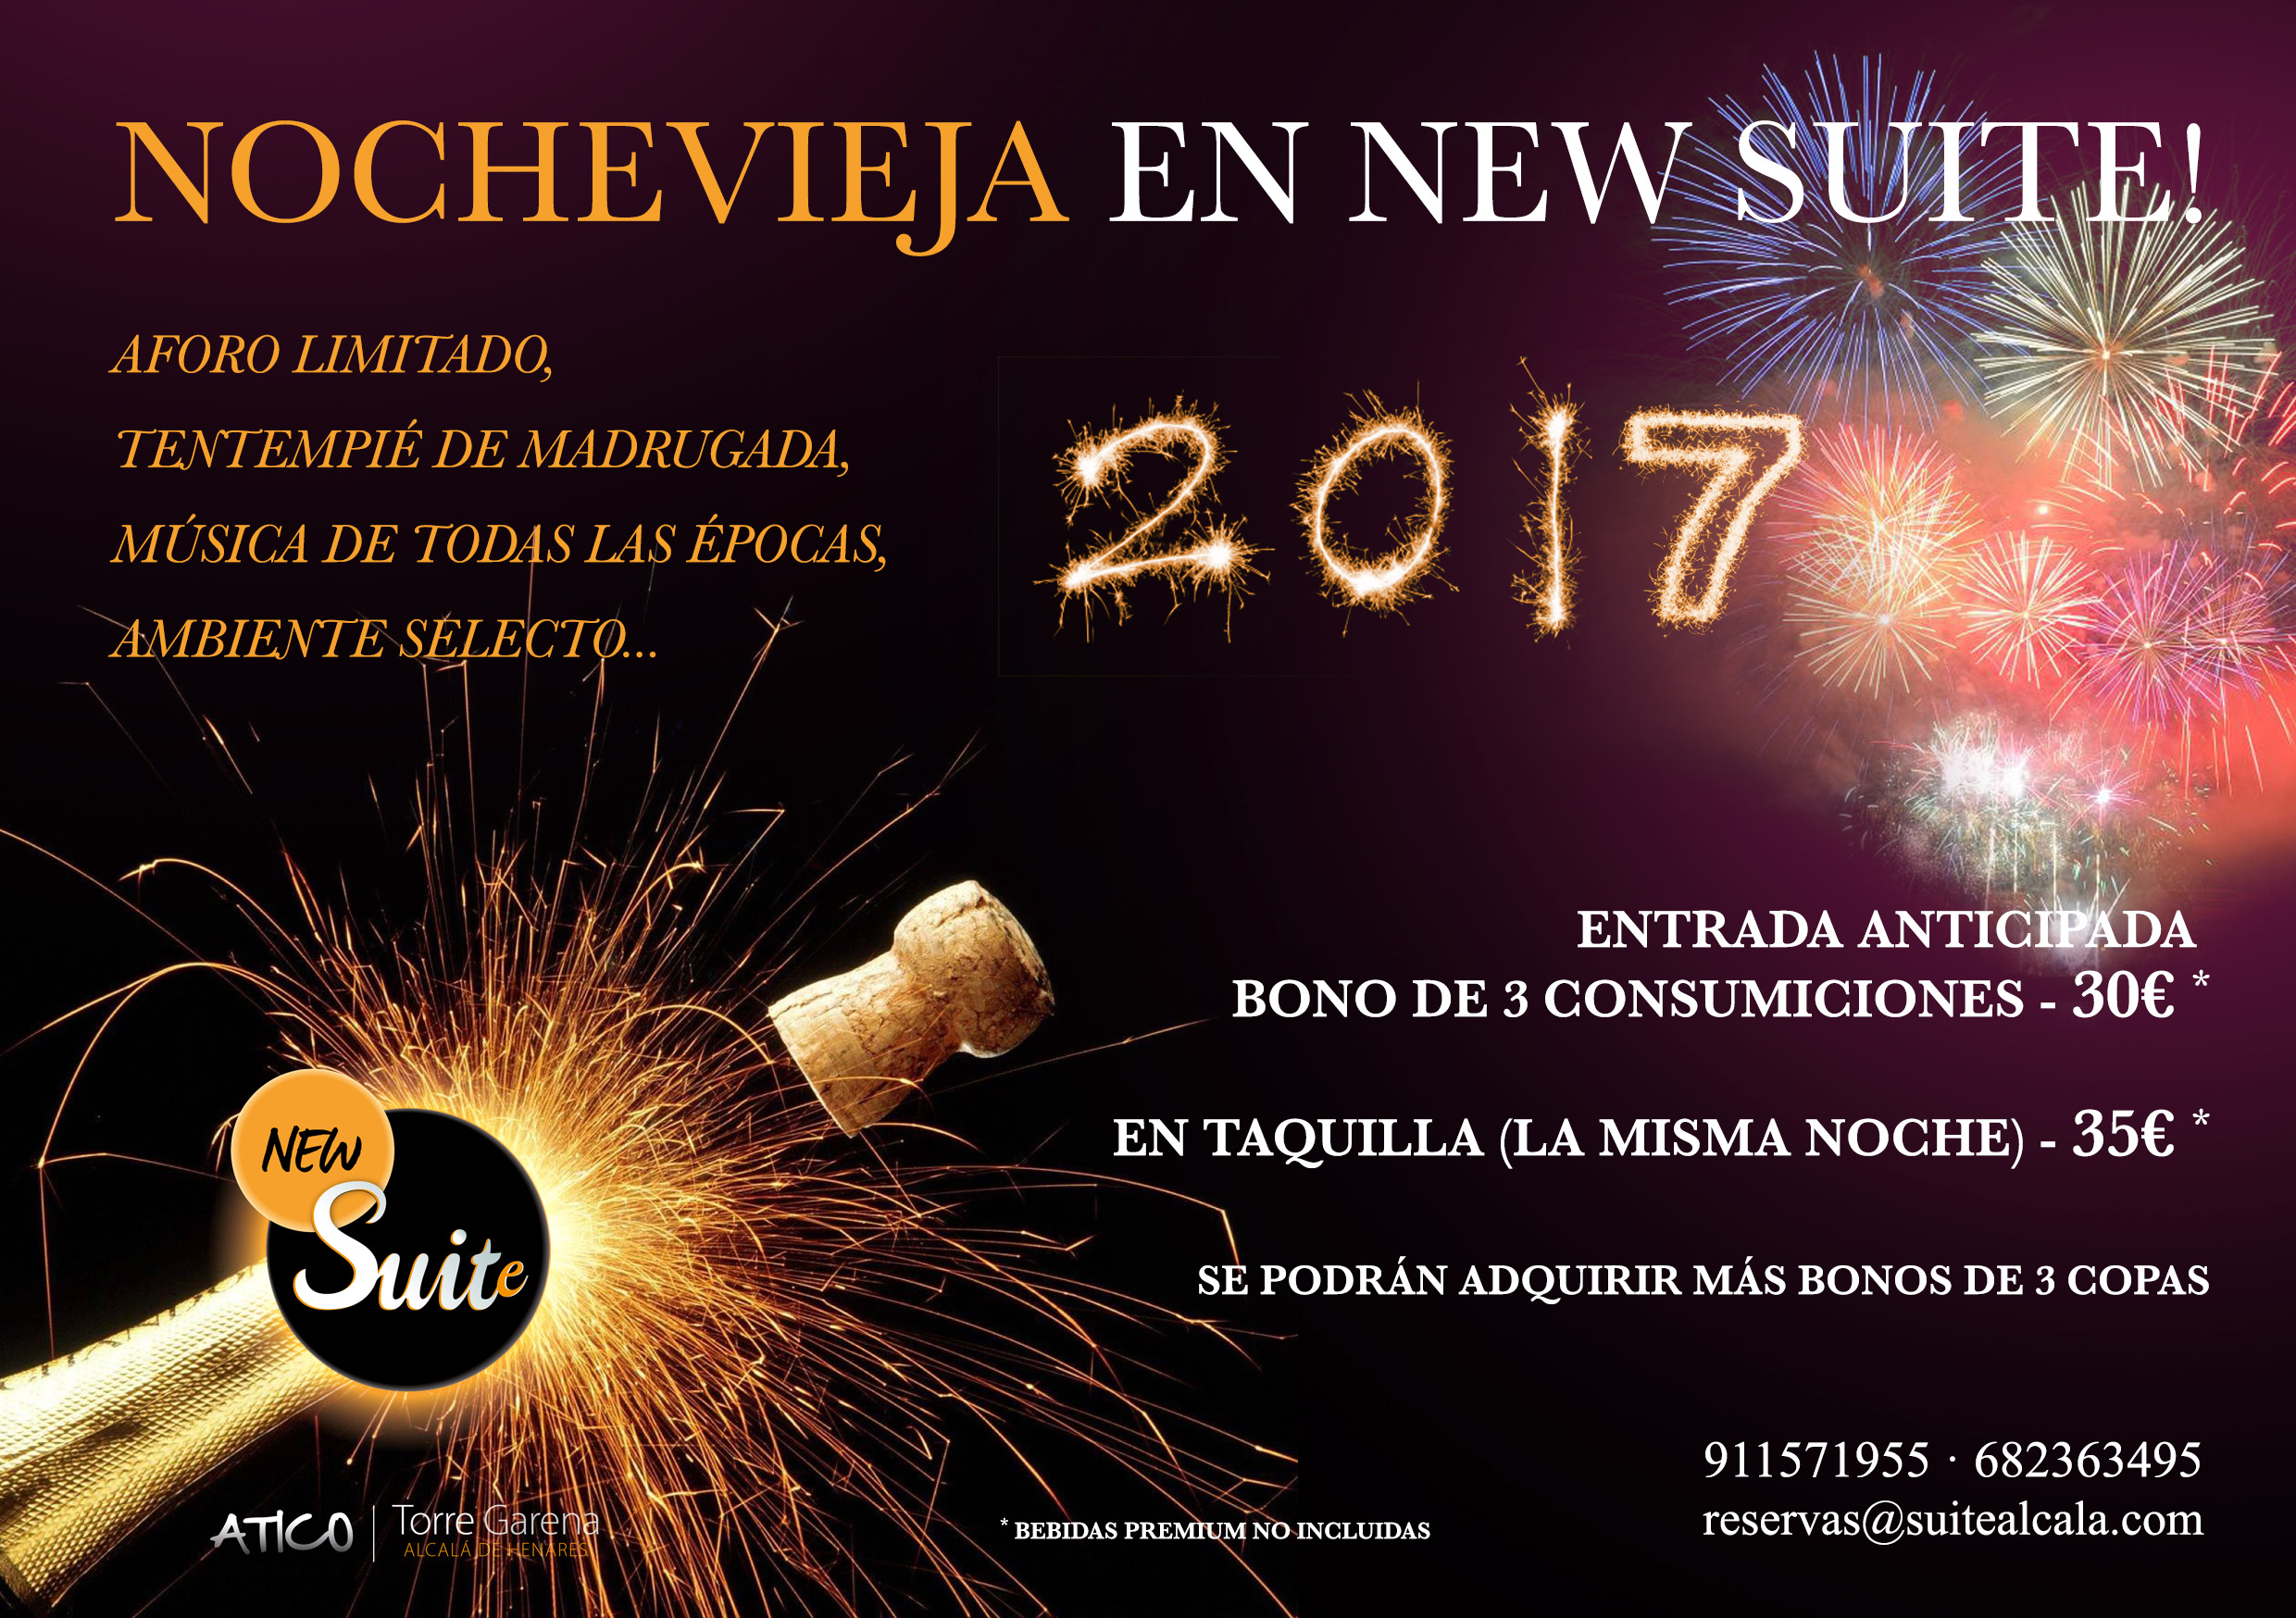 new-suite-nochevieja-2016